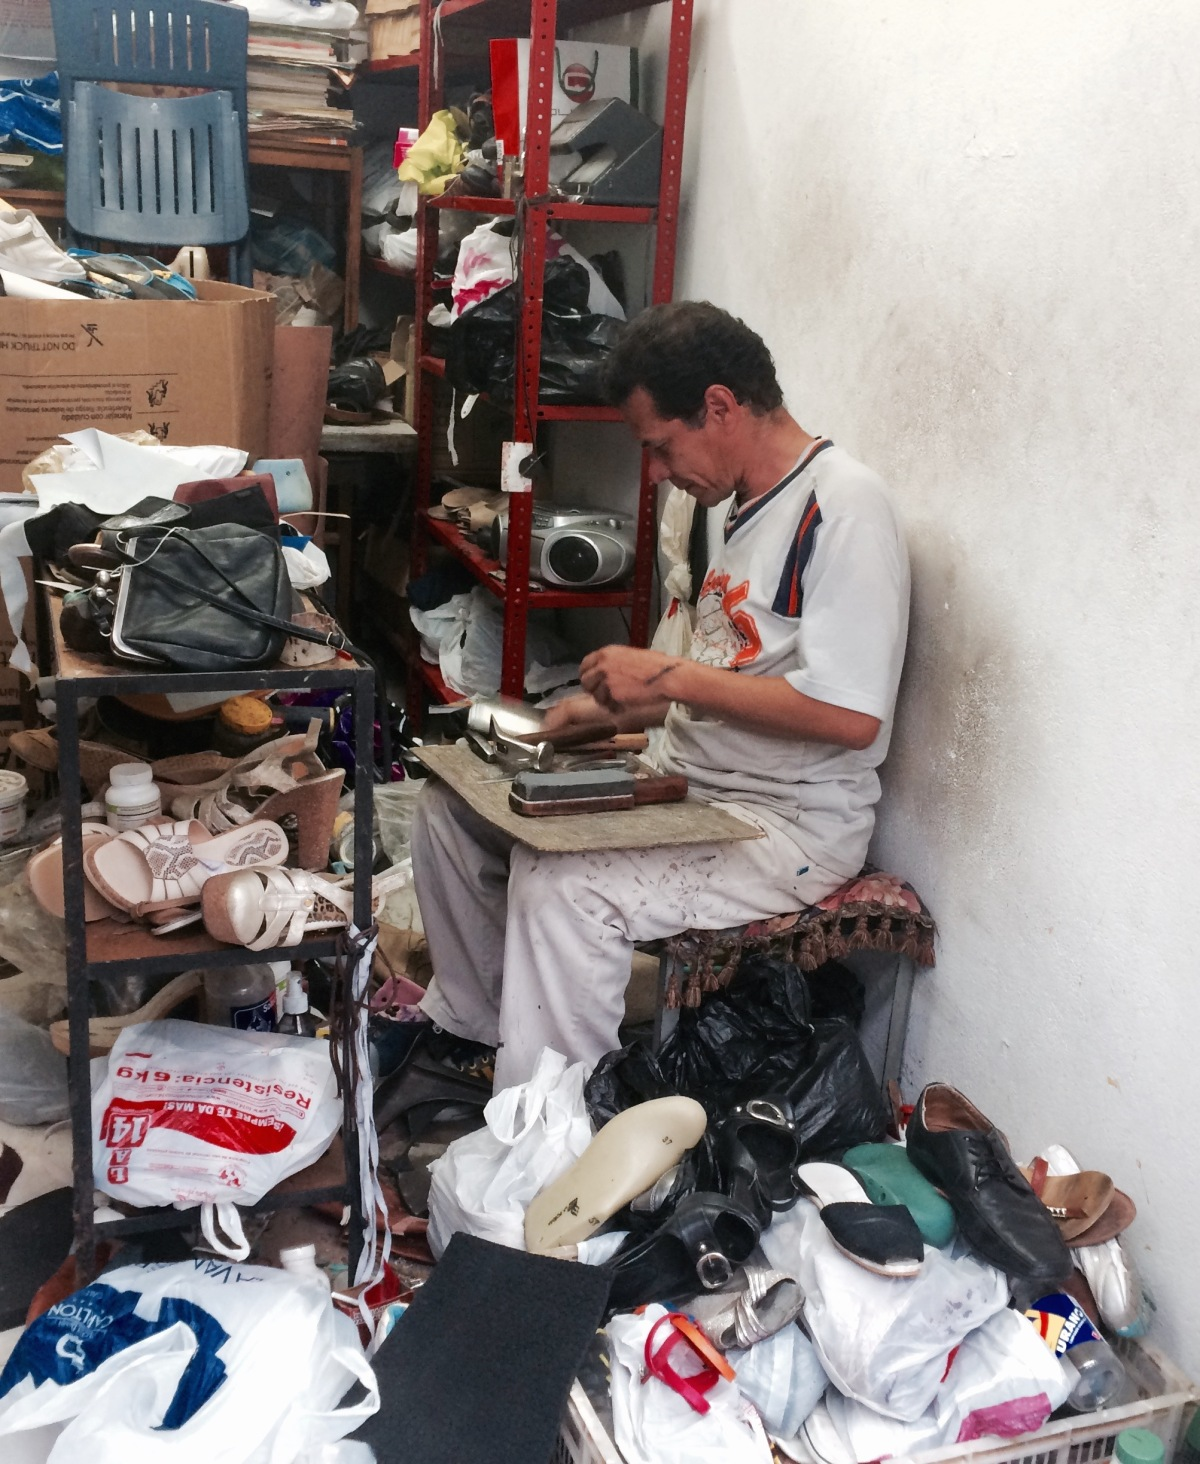 The Neighborhood Shoe Repairman